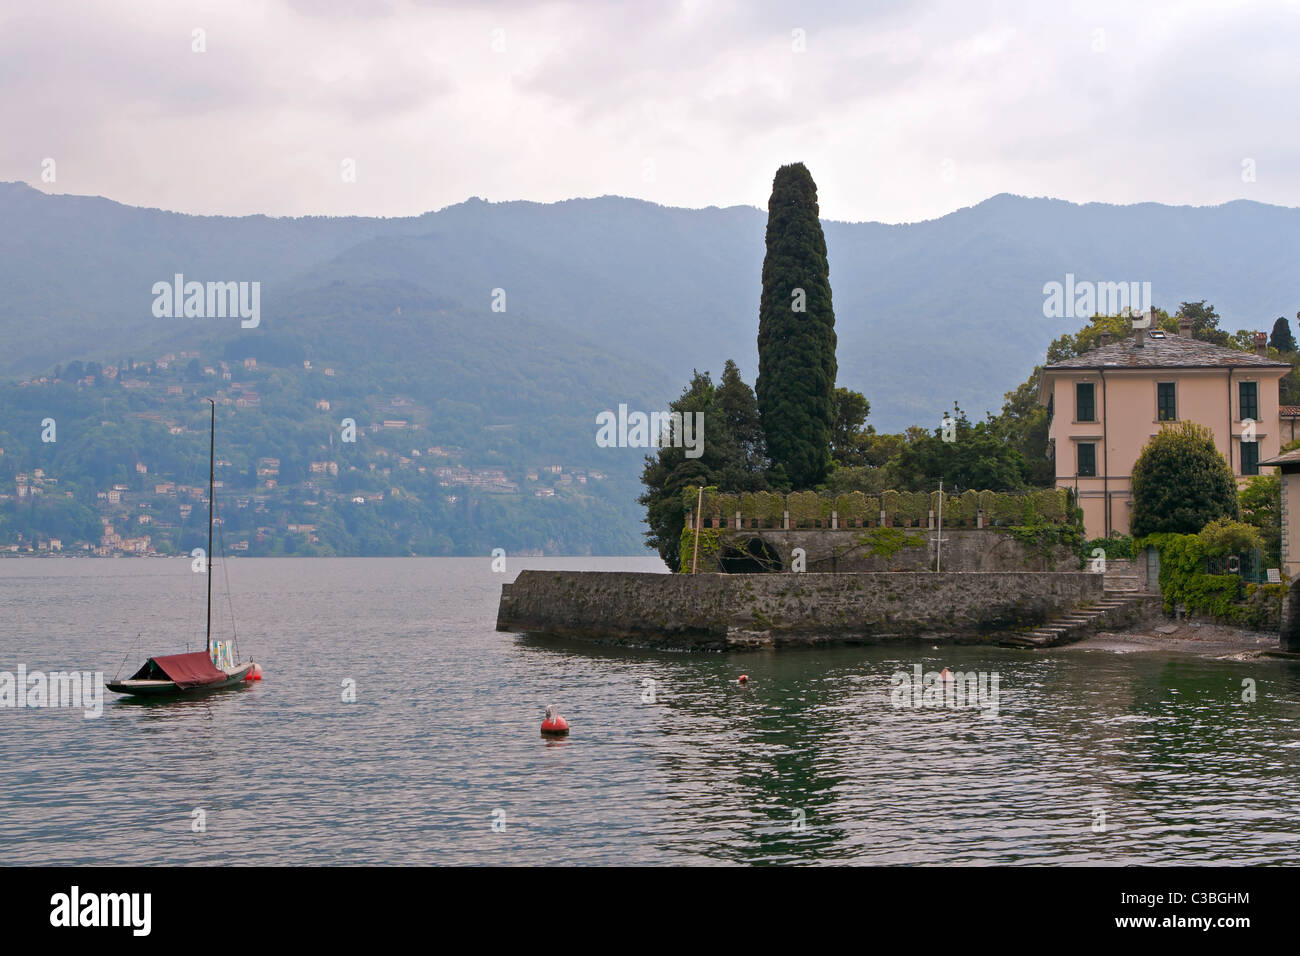 The villa Oleandra of George Clooney in Laglio, Italy Stock Photo